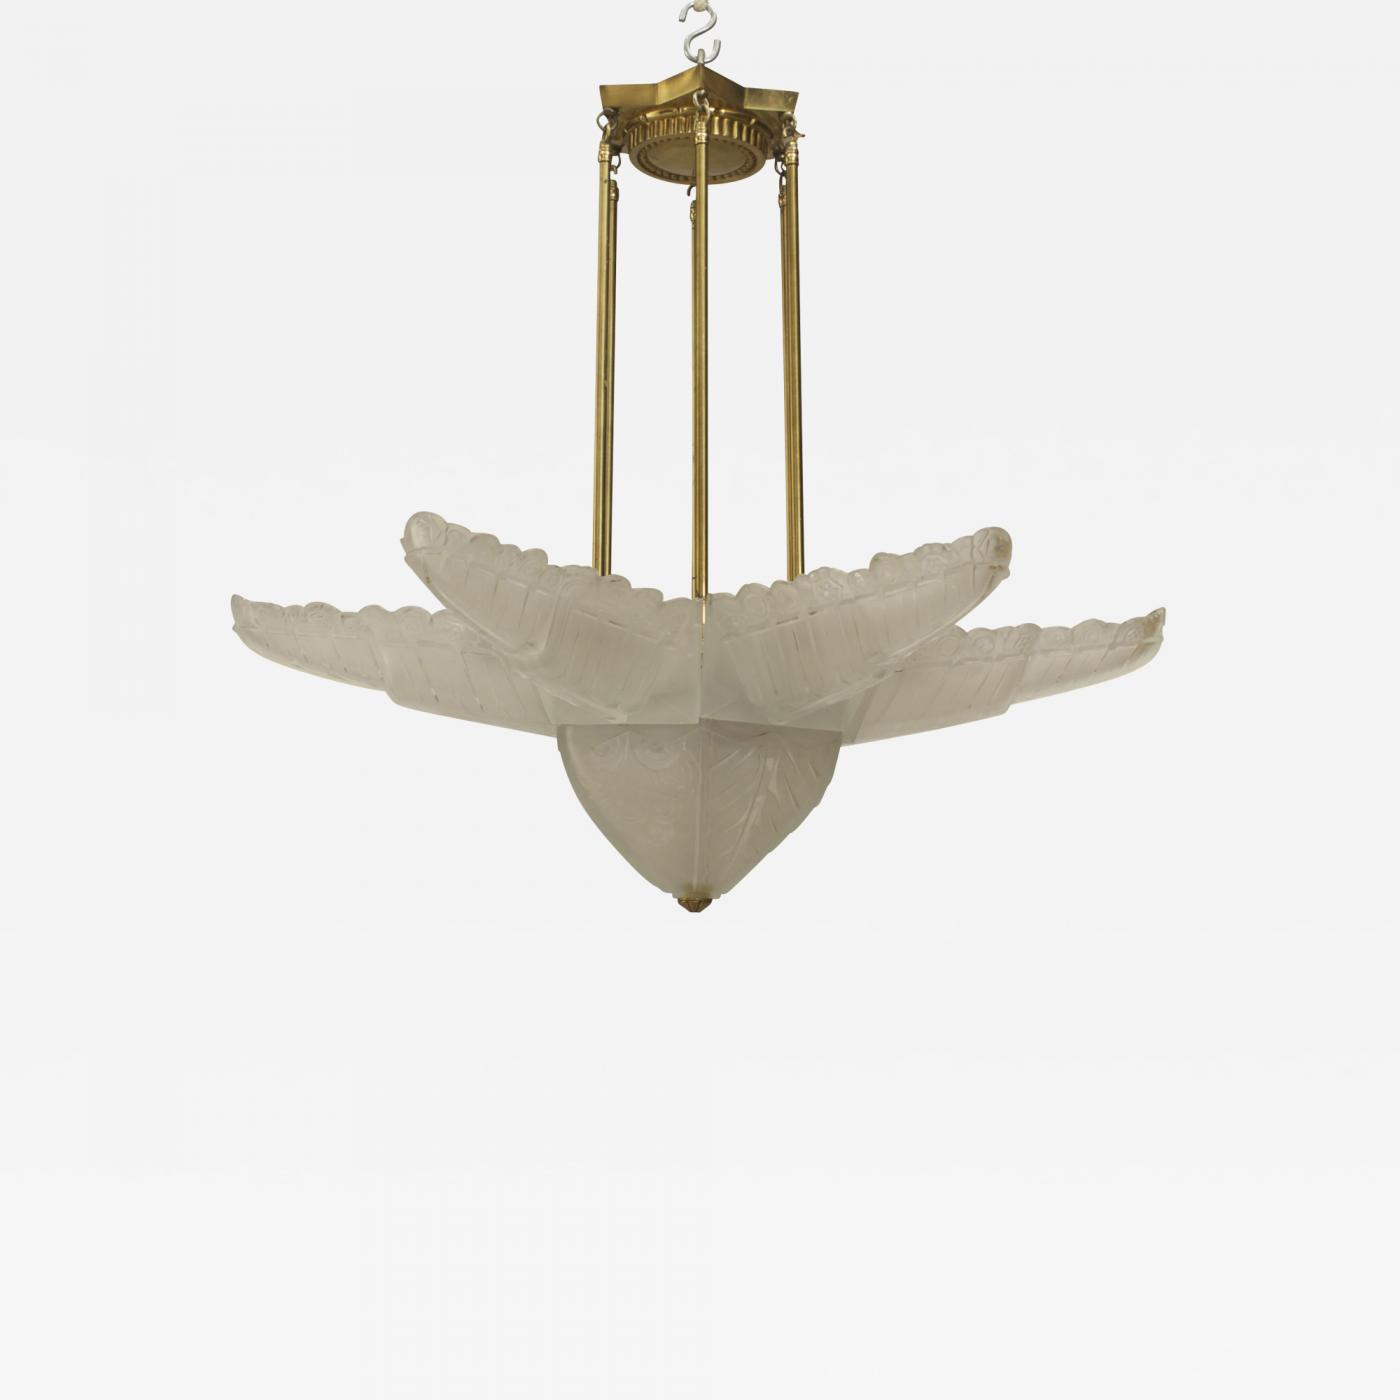 Sabino art glass french art deco molded frosted glass 6 sided star listings furniture lighting chandeliers and pendants aloadofball Image collections